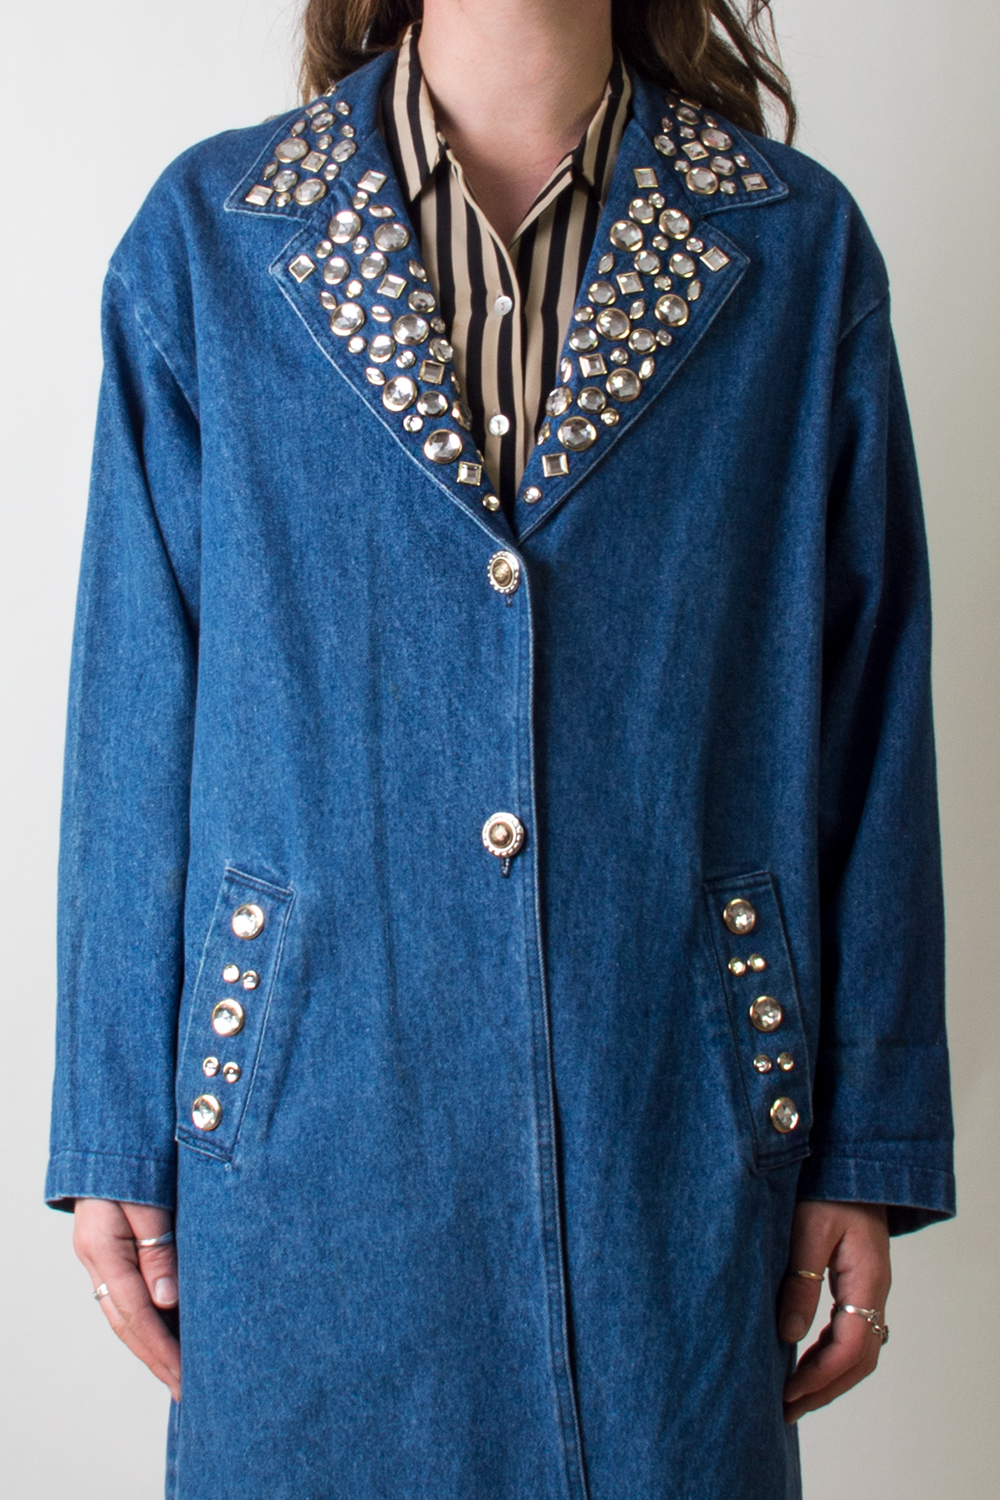 vintage denim trench coat with crystal embellishments